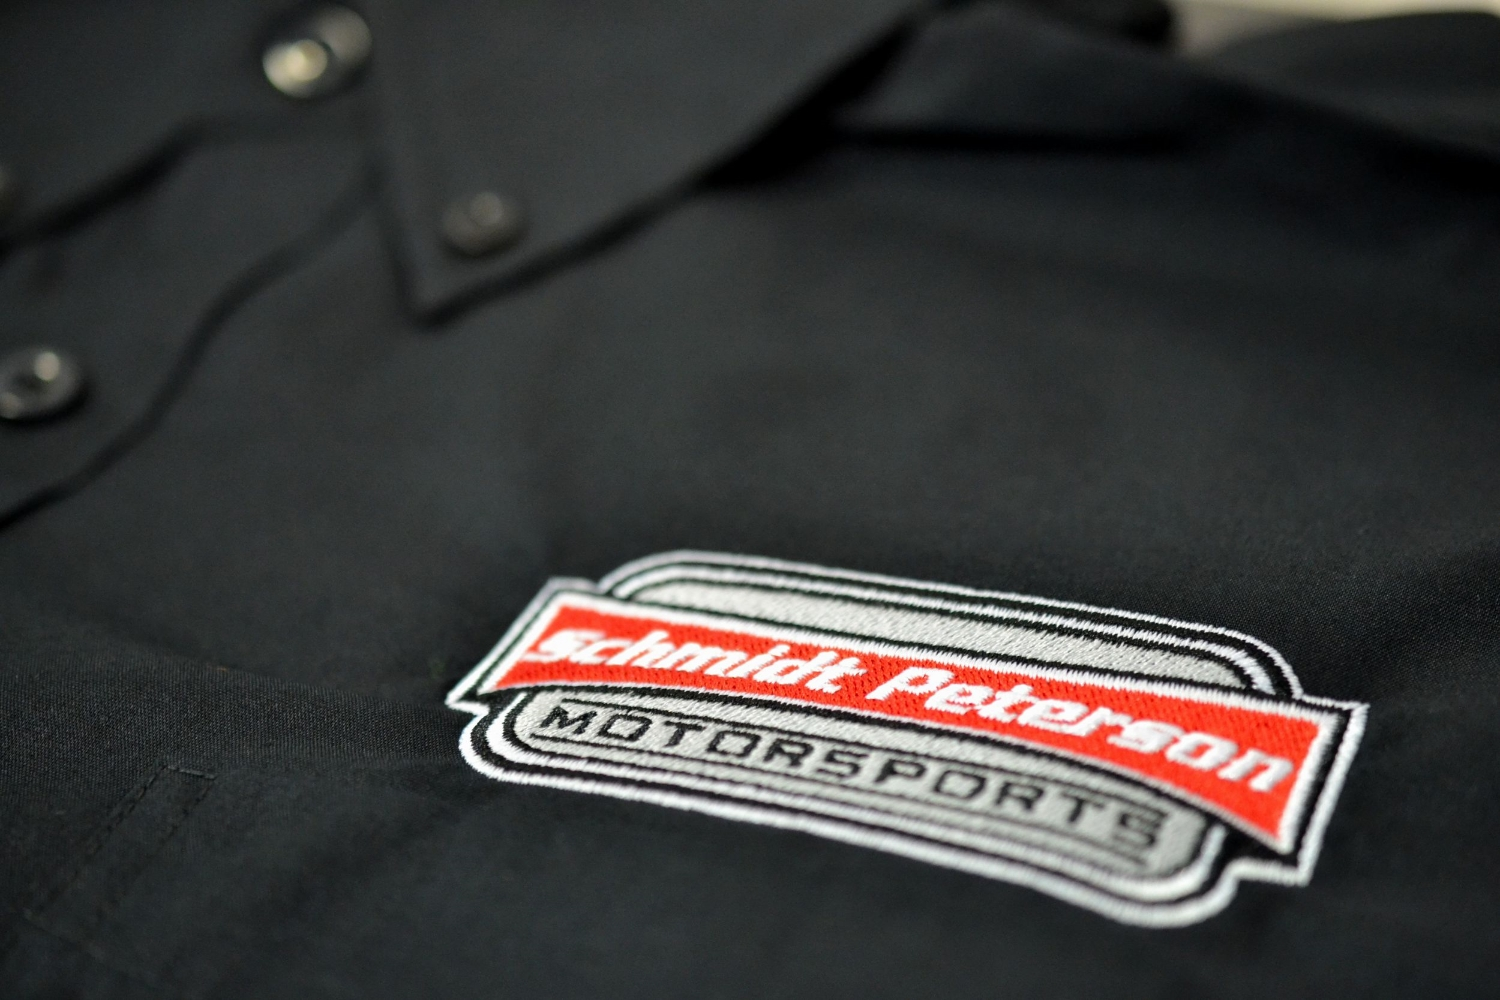 Schmidt Peterson embroidered logo